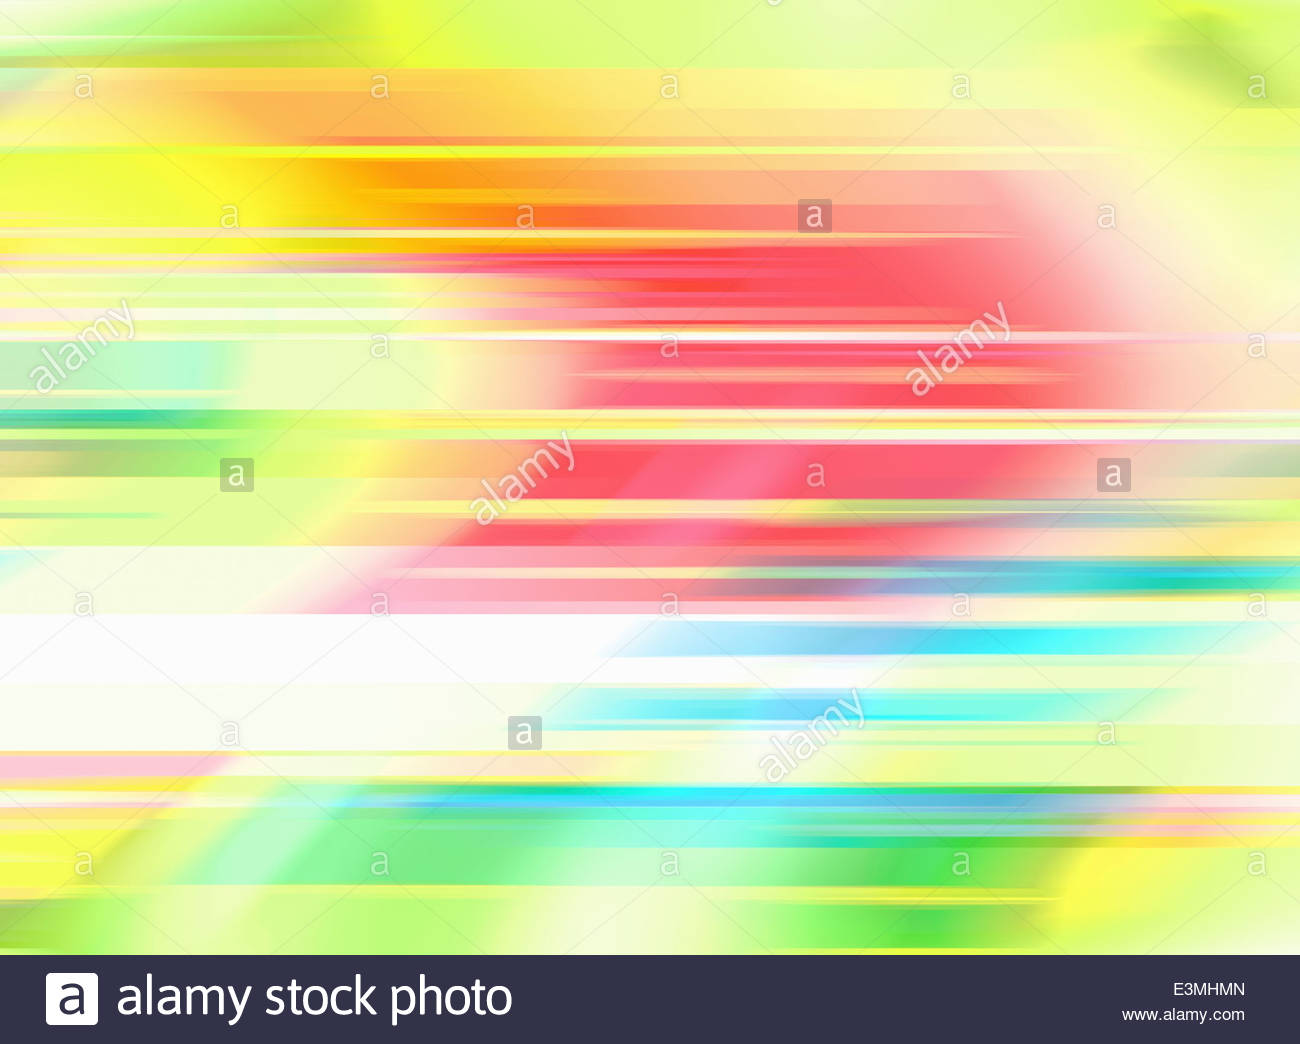 Multicolored blurred abstract backgrounds pattern - Stock Image